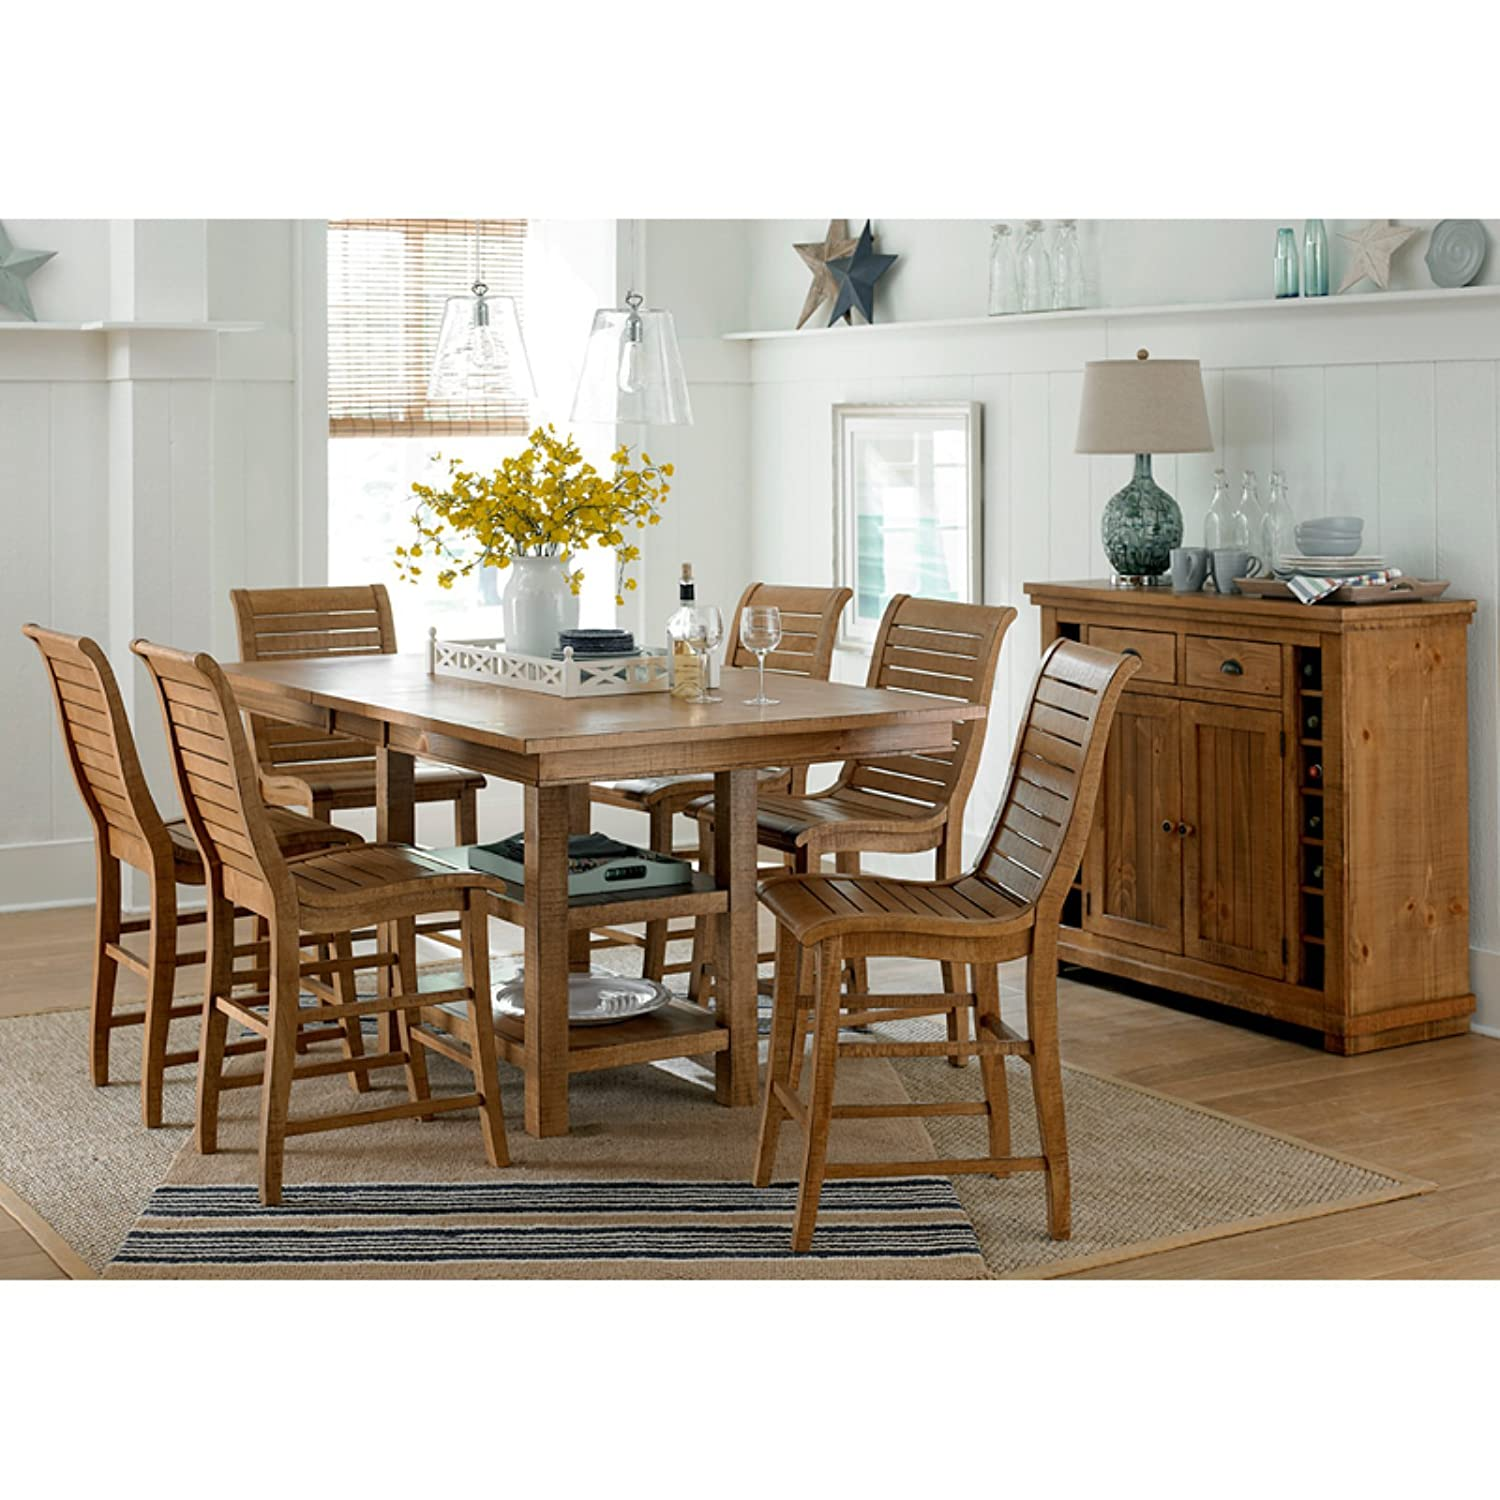 Willow upholstered dining chair narrow willow solid oak dining chair - Amazon Com Pine Rectangular Counter Complete Table Distressed Pine Table Chair Sets